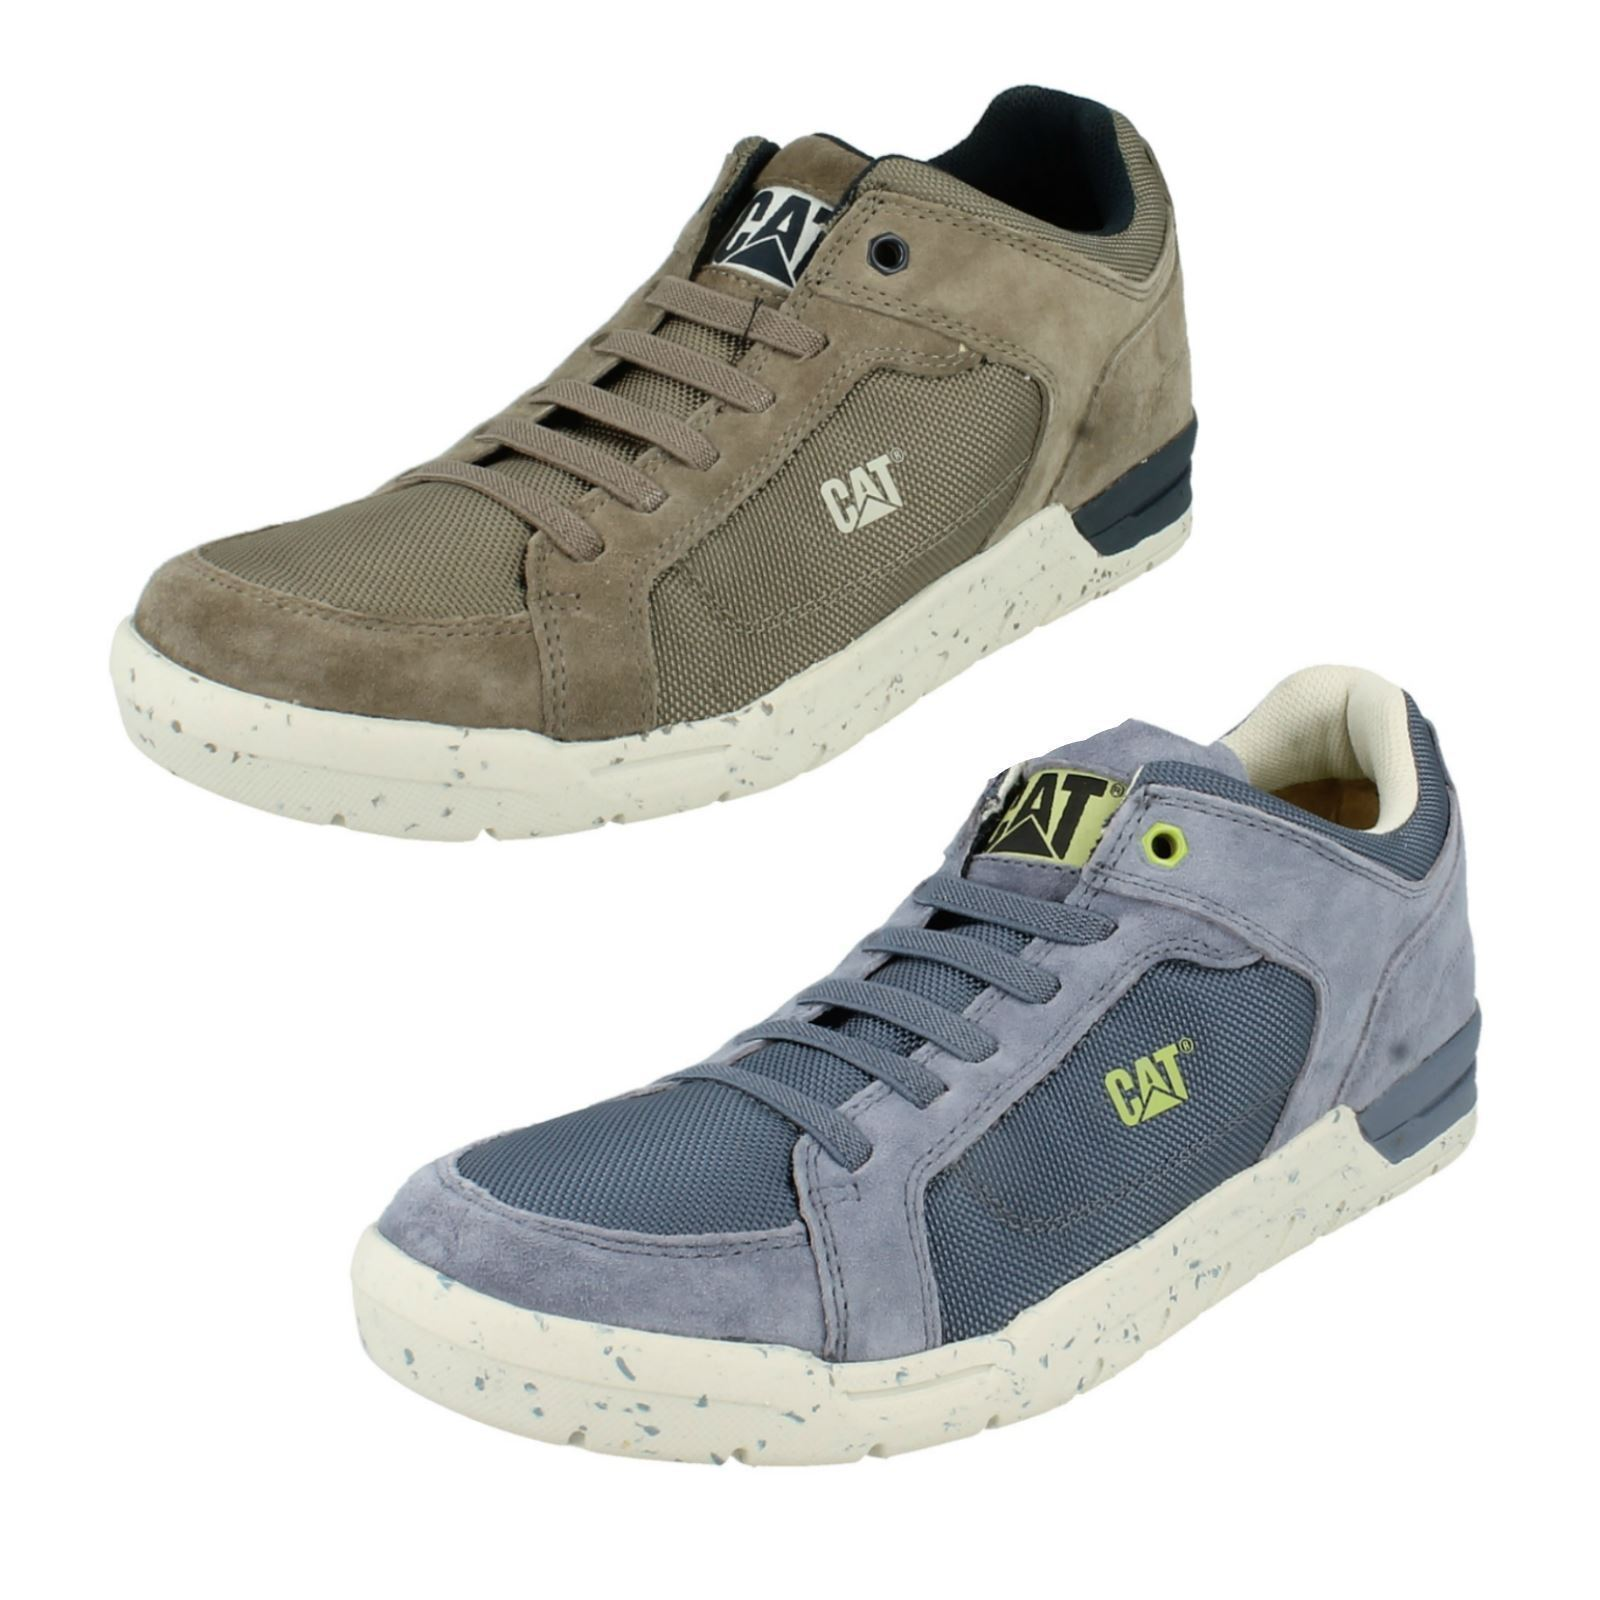 Mens Caterpillar Trainers bluee   Grey Leather Elasticated Lace Indent